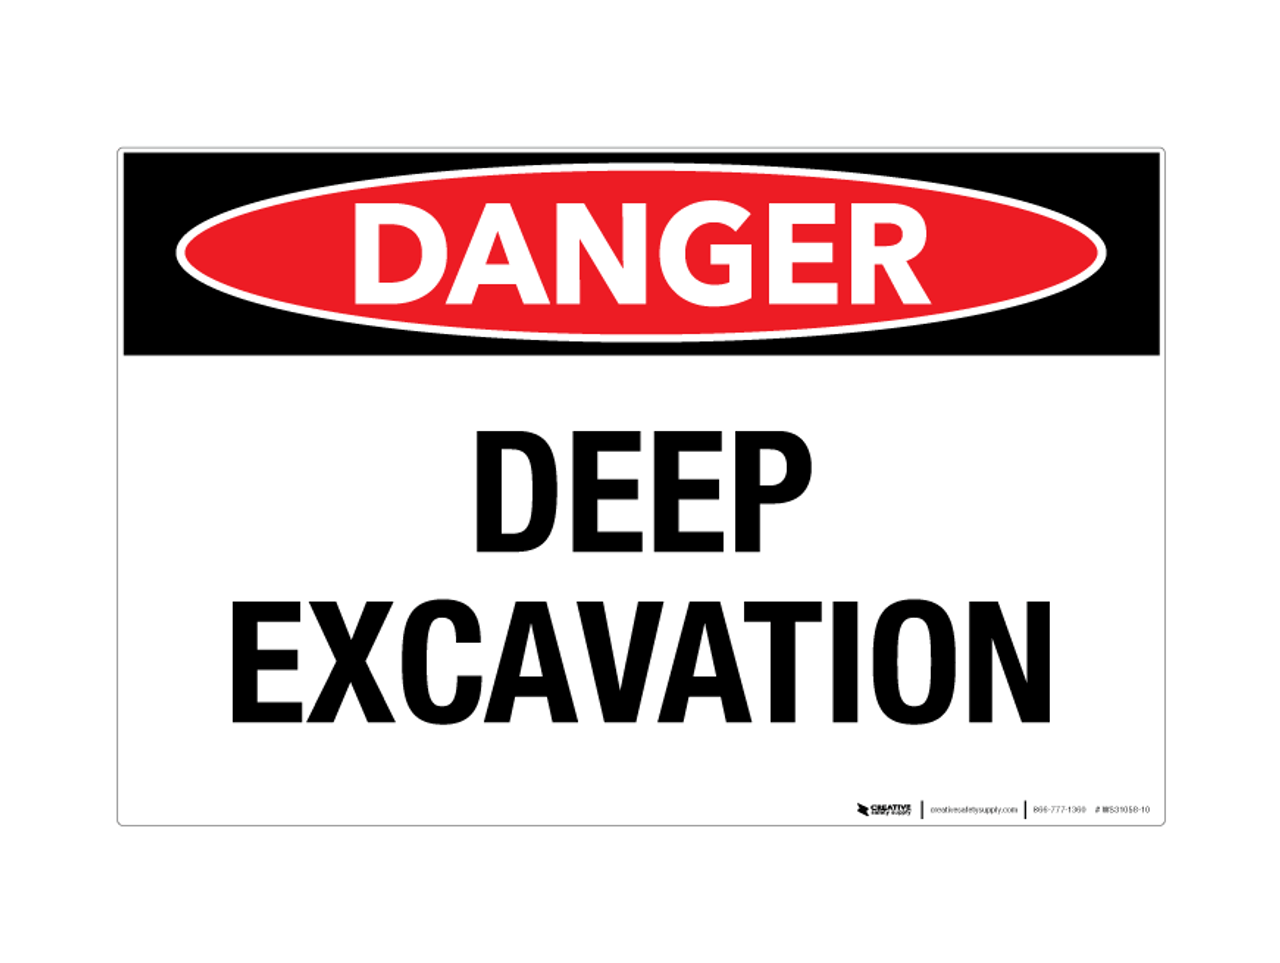 Danger Deep Excavation Wall Sign Creative Safety Supply